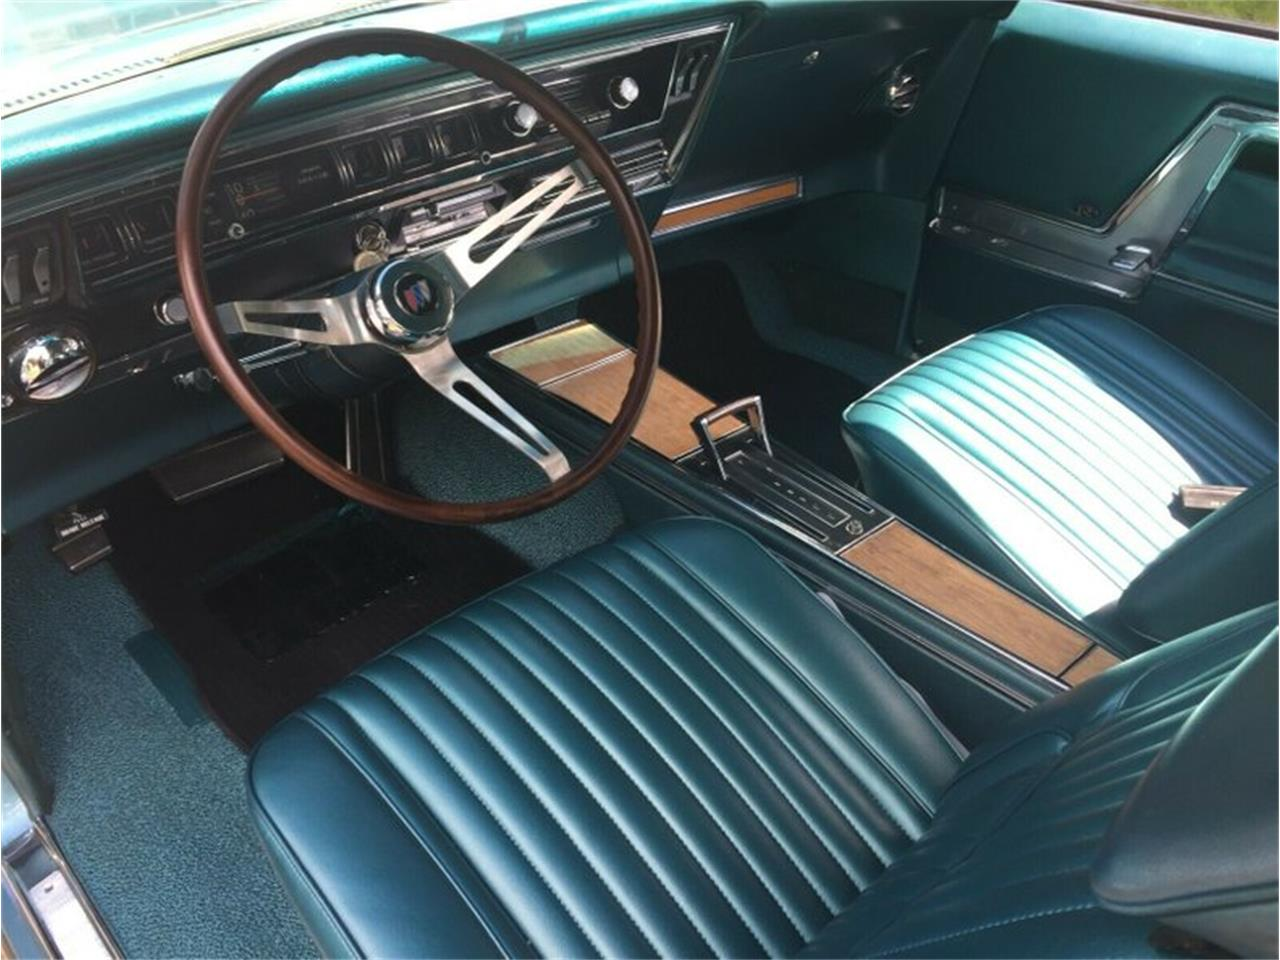 1967 Buick Riviera for sale in West Babylon, NY – photo 86